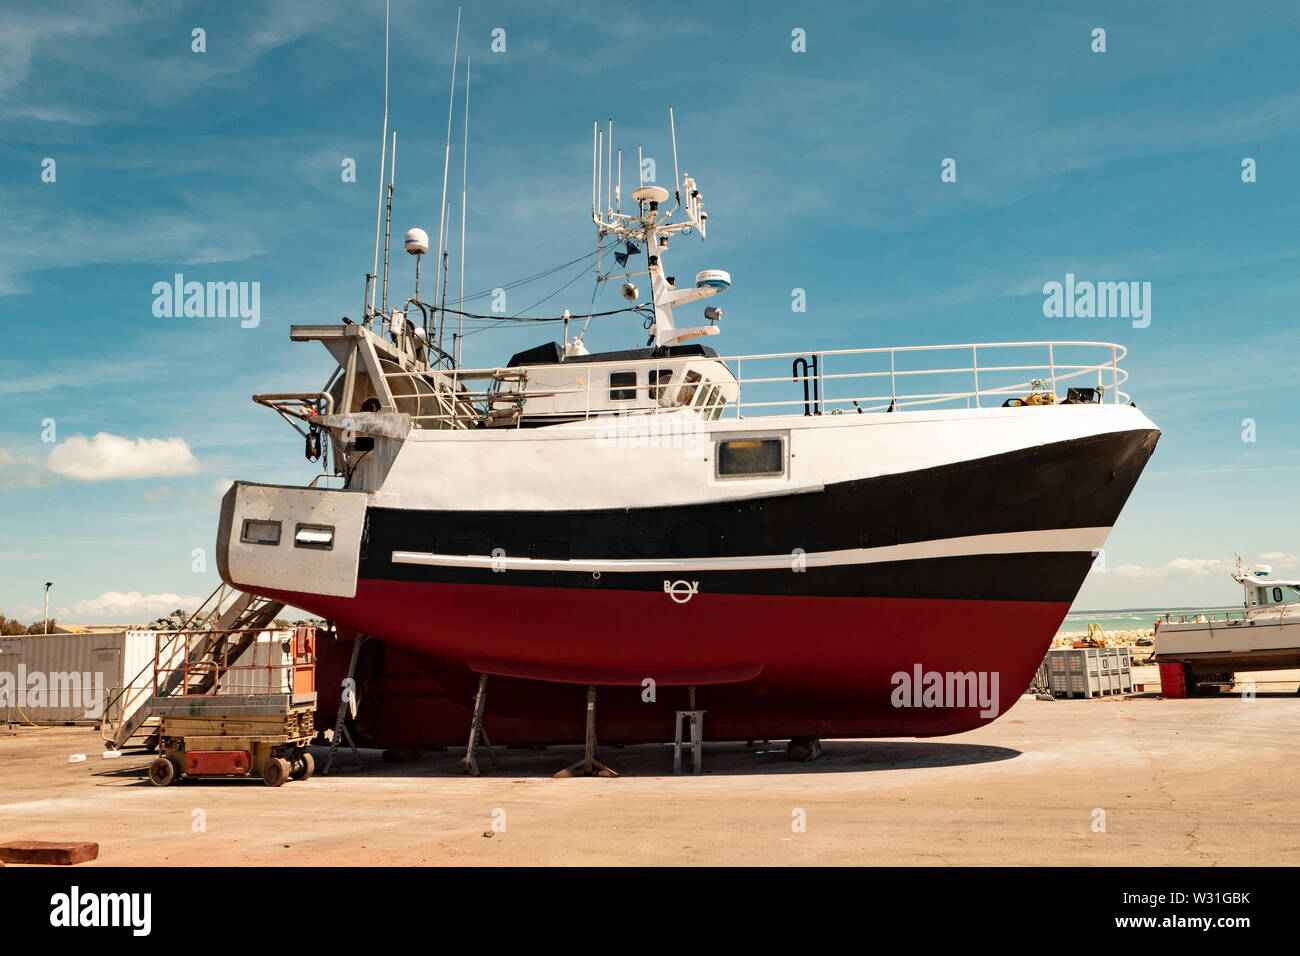 Hull of a boat for repair on the dry deck - Stock Image